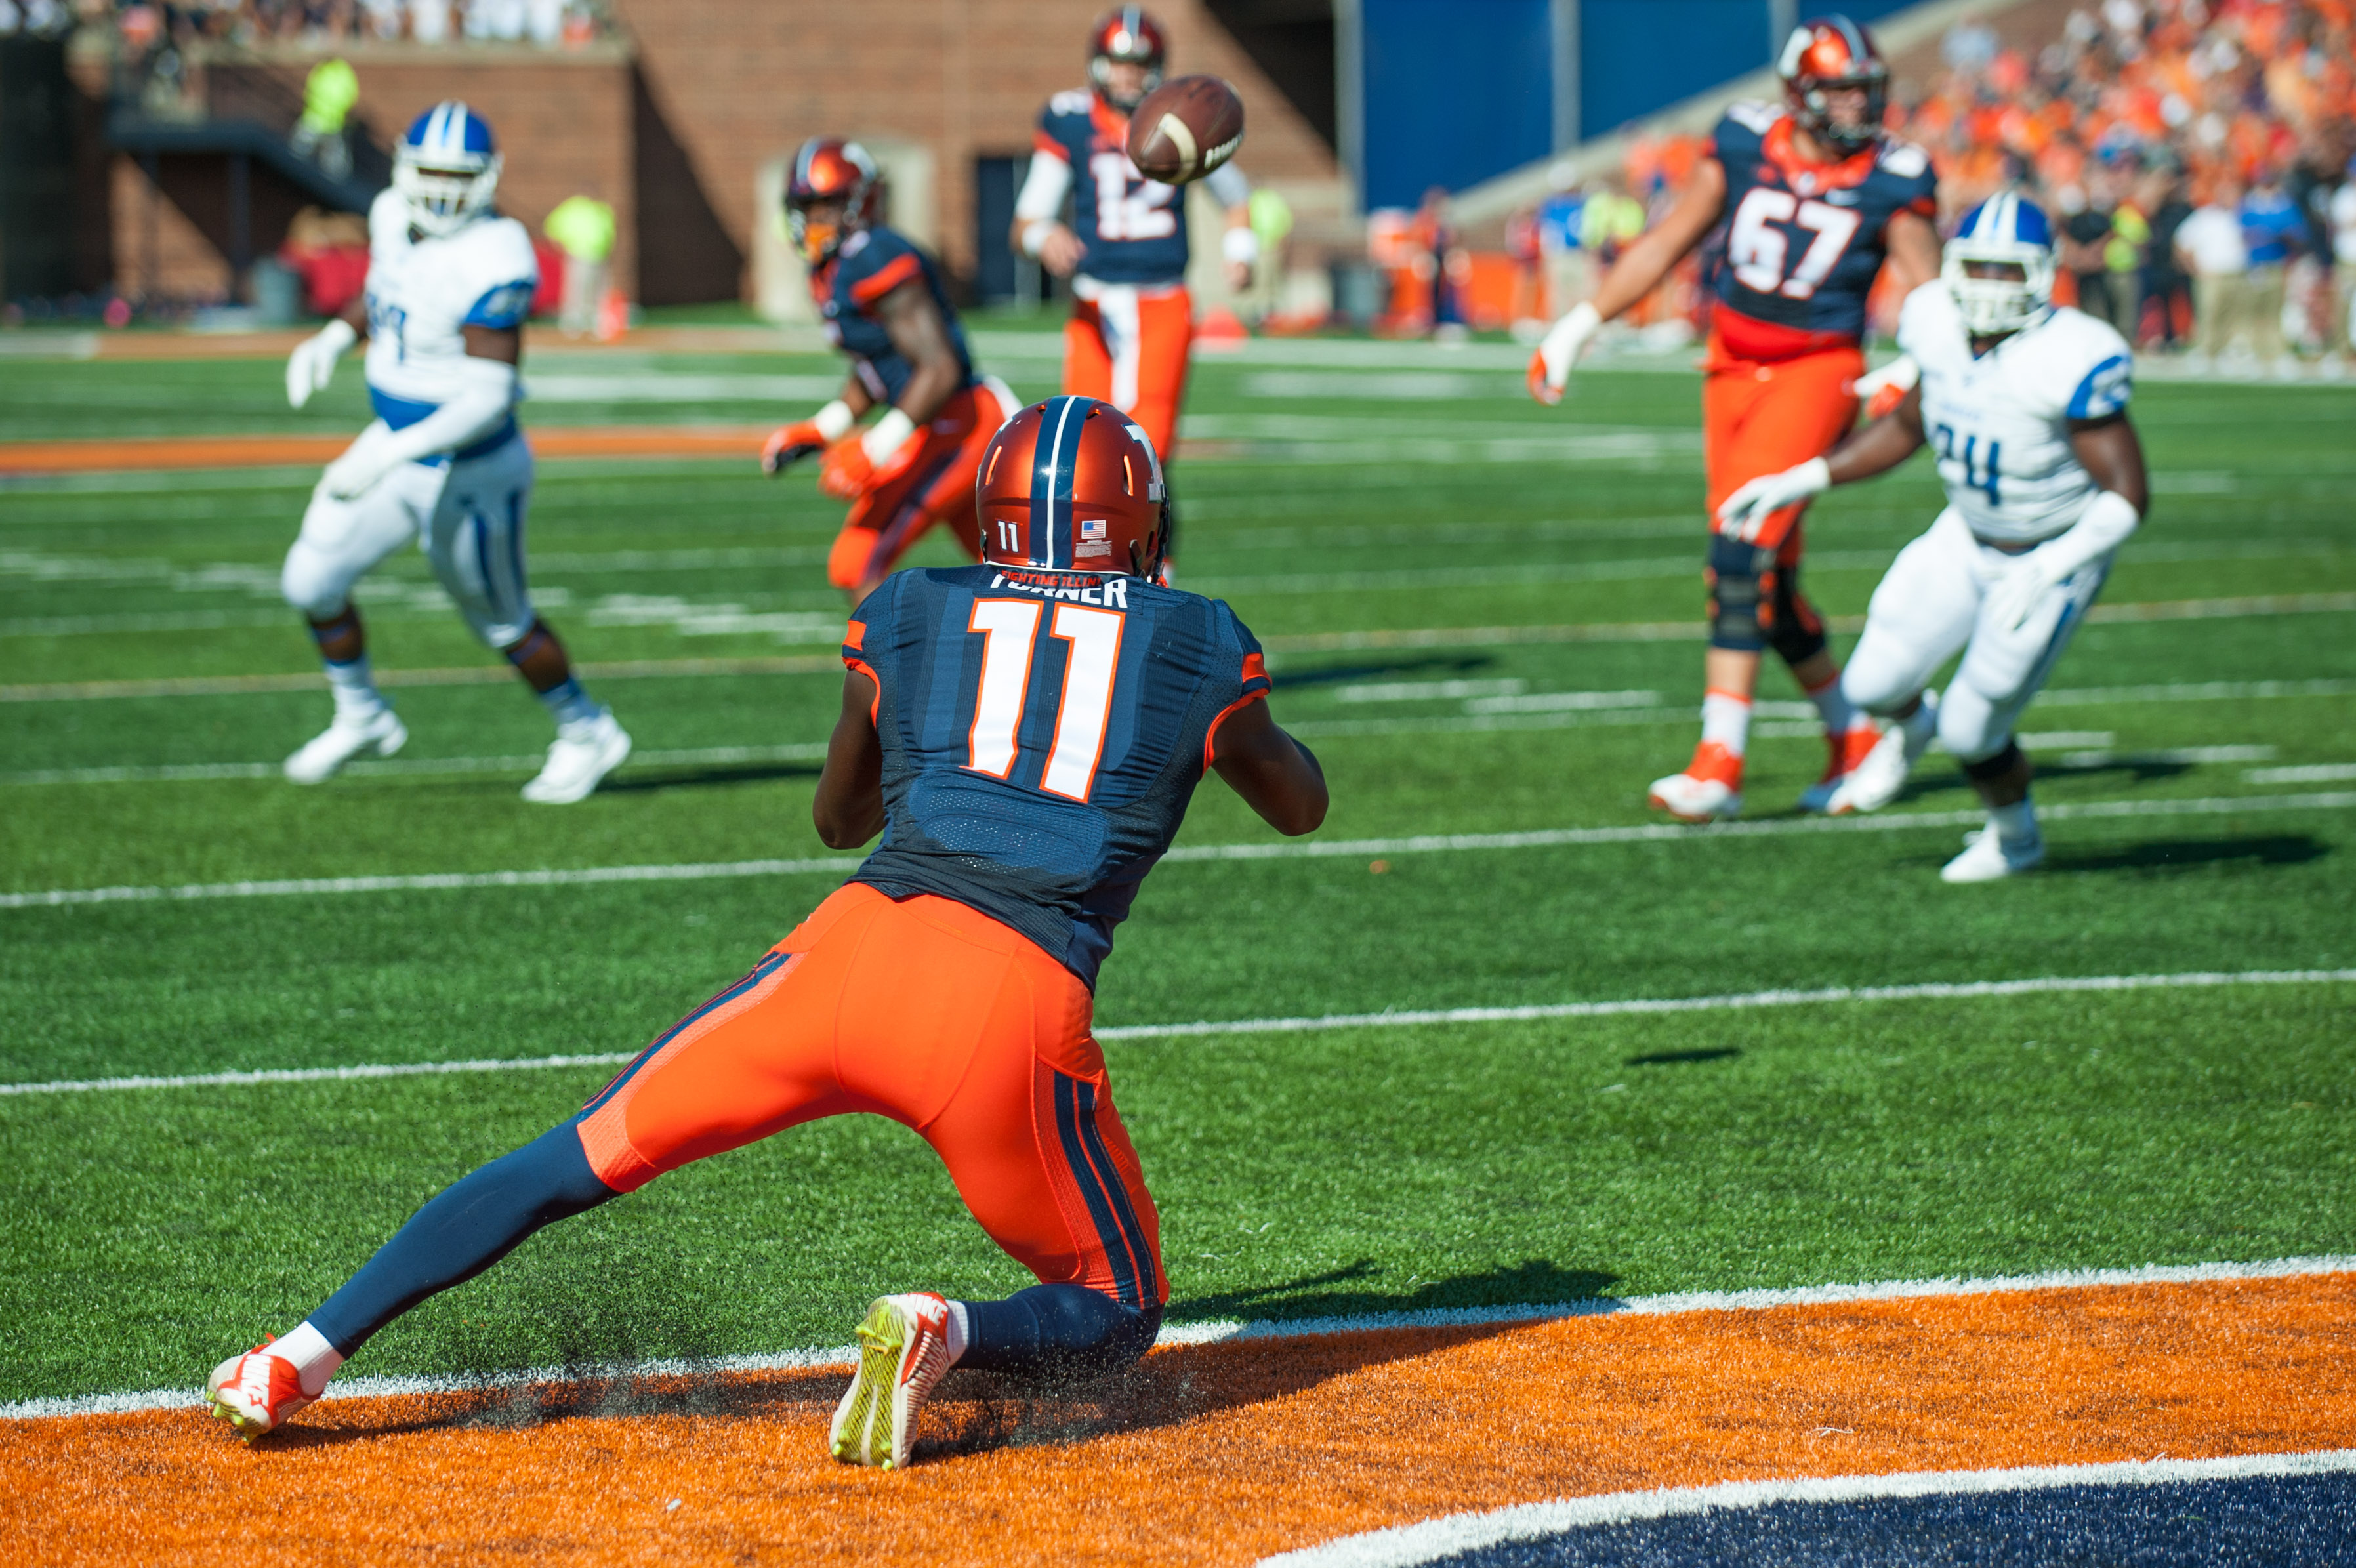 Illinois wide receiver Malik Turner (11) catches a touchdown pass during the first quarter of an NCAA football game against Middle Tennessee Saturday, Sept. 26, 2015 at Memorial Stadium in Champaign, Ill.  (AP Photo/Bradley Leeb)